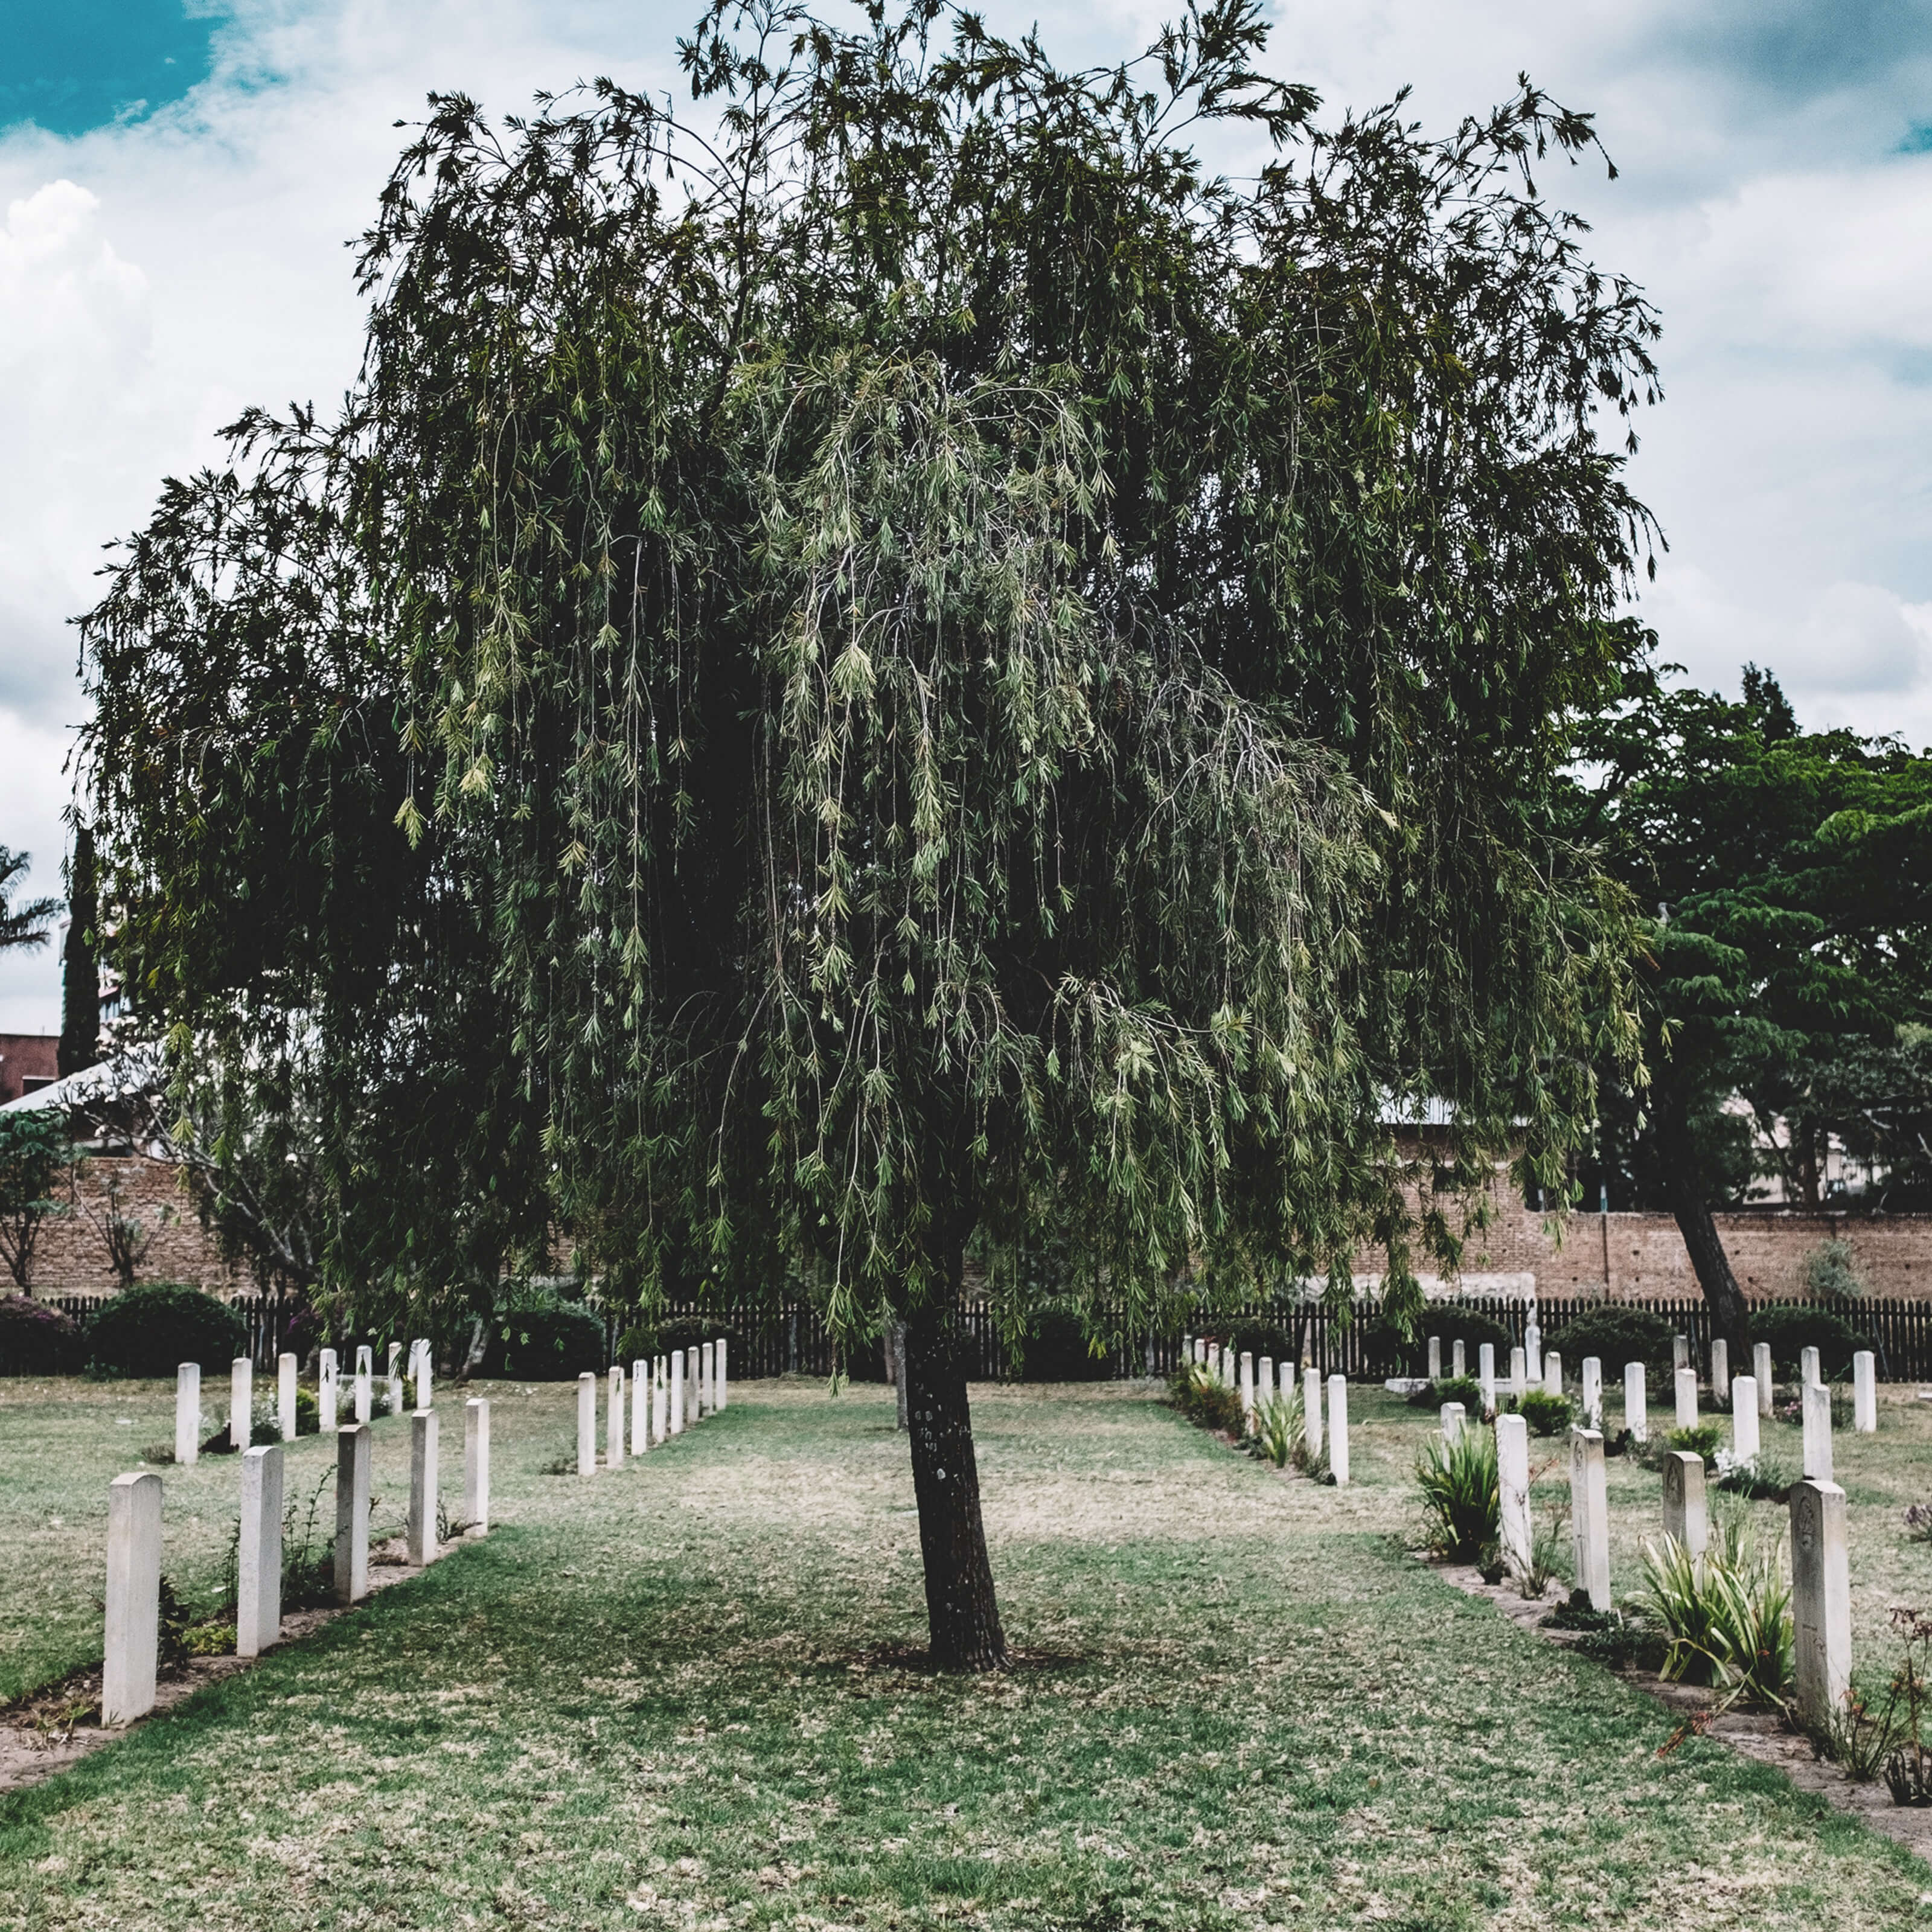 tree between rows of gravestones